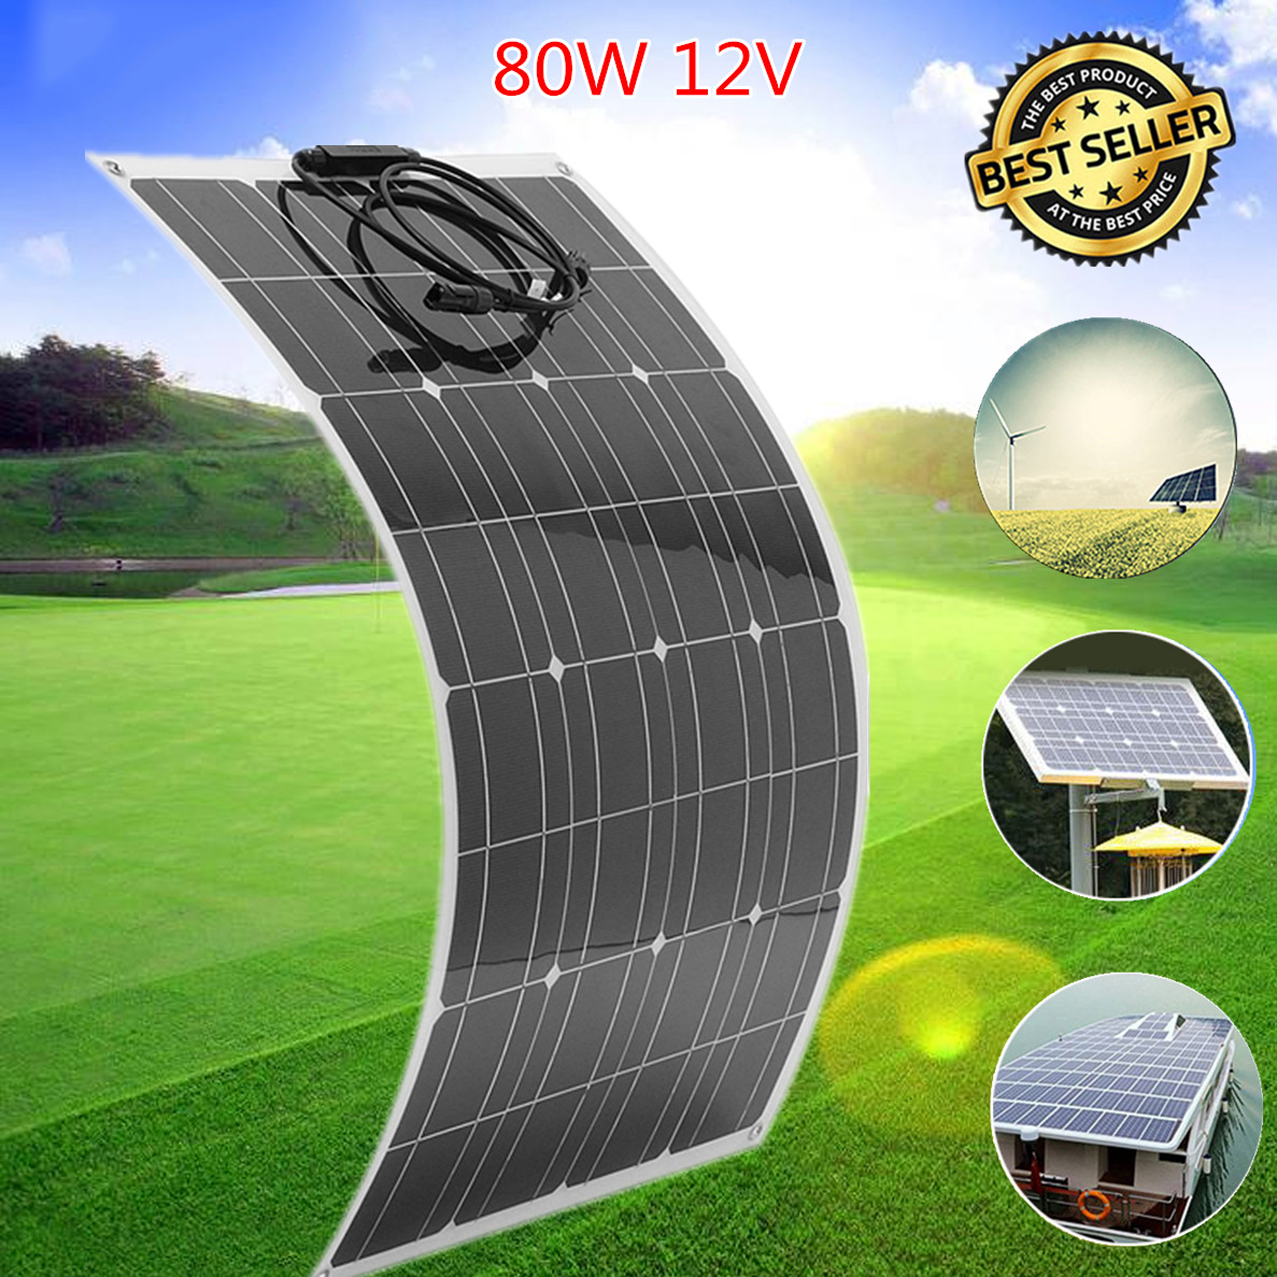 LEORY Flexible Solar Panel Plate 80W 18V Solar Charger For Car Battery 12V Sunpower Monocrystalline Silicon Cells Module Kit leory 5w 18v solar panel monocrystalline waterproof multi purpose solar cells charger for mobilephone cars boat motorcycle